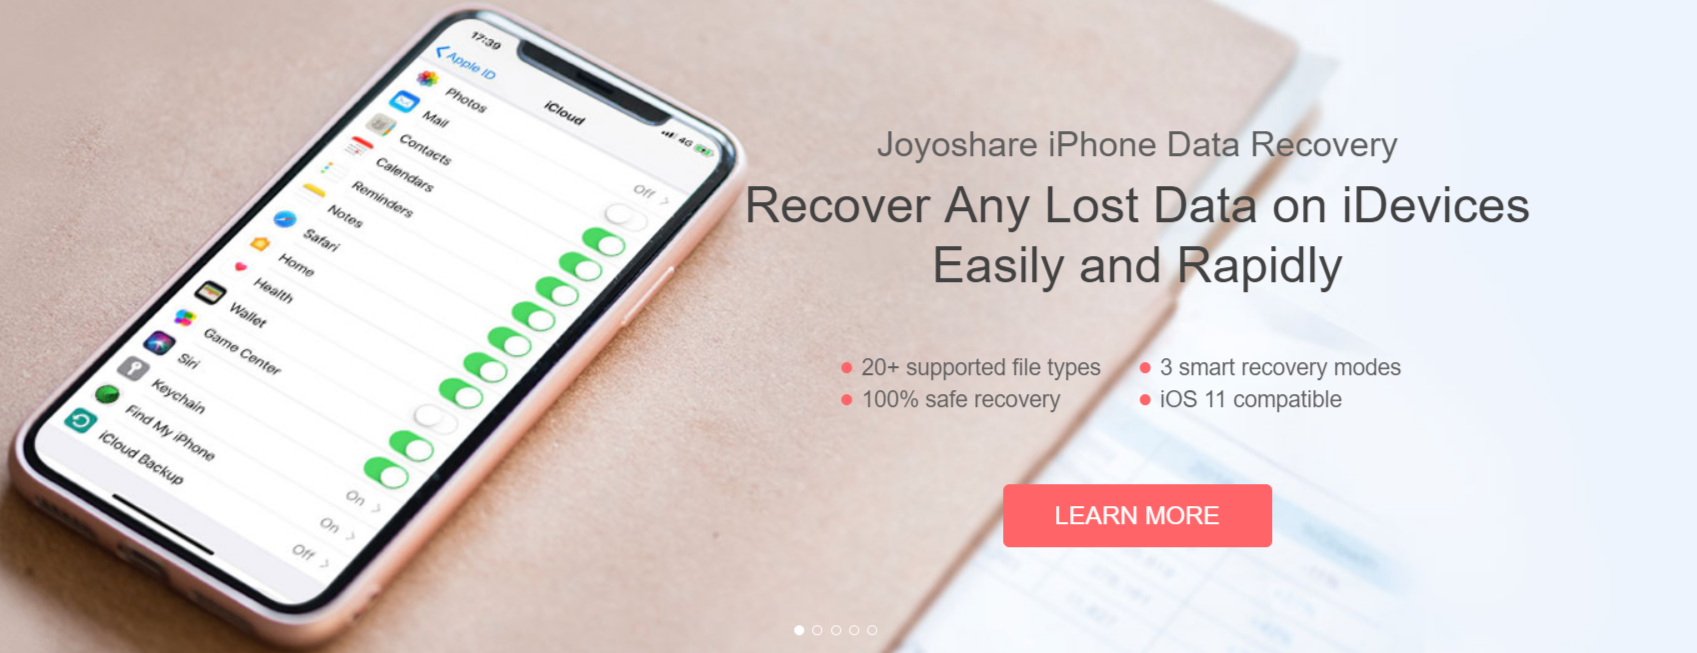 Joyoshare Review- Recover Anything You Want